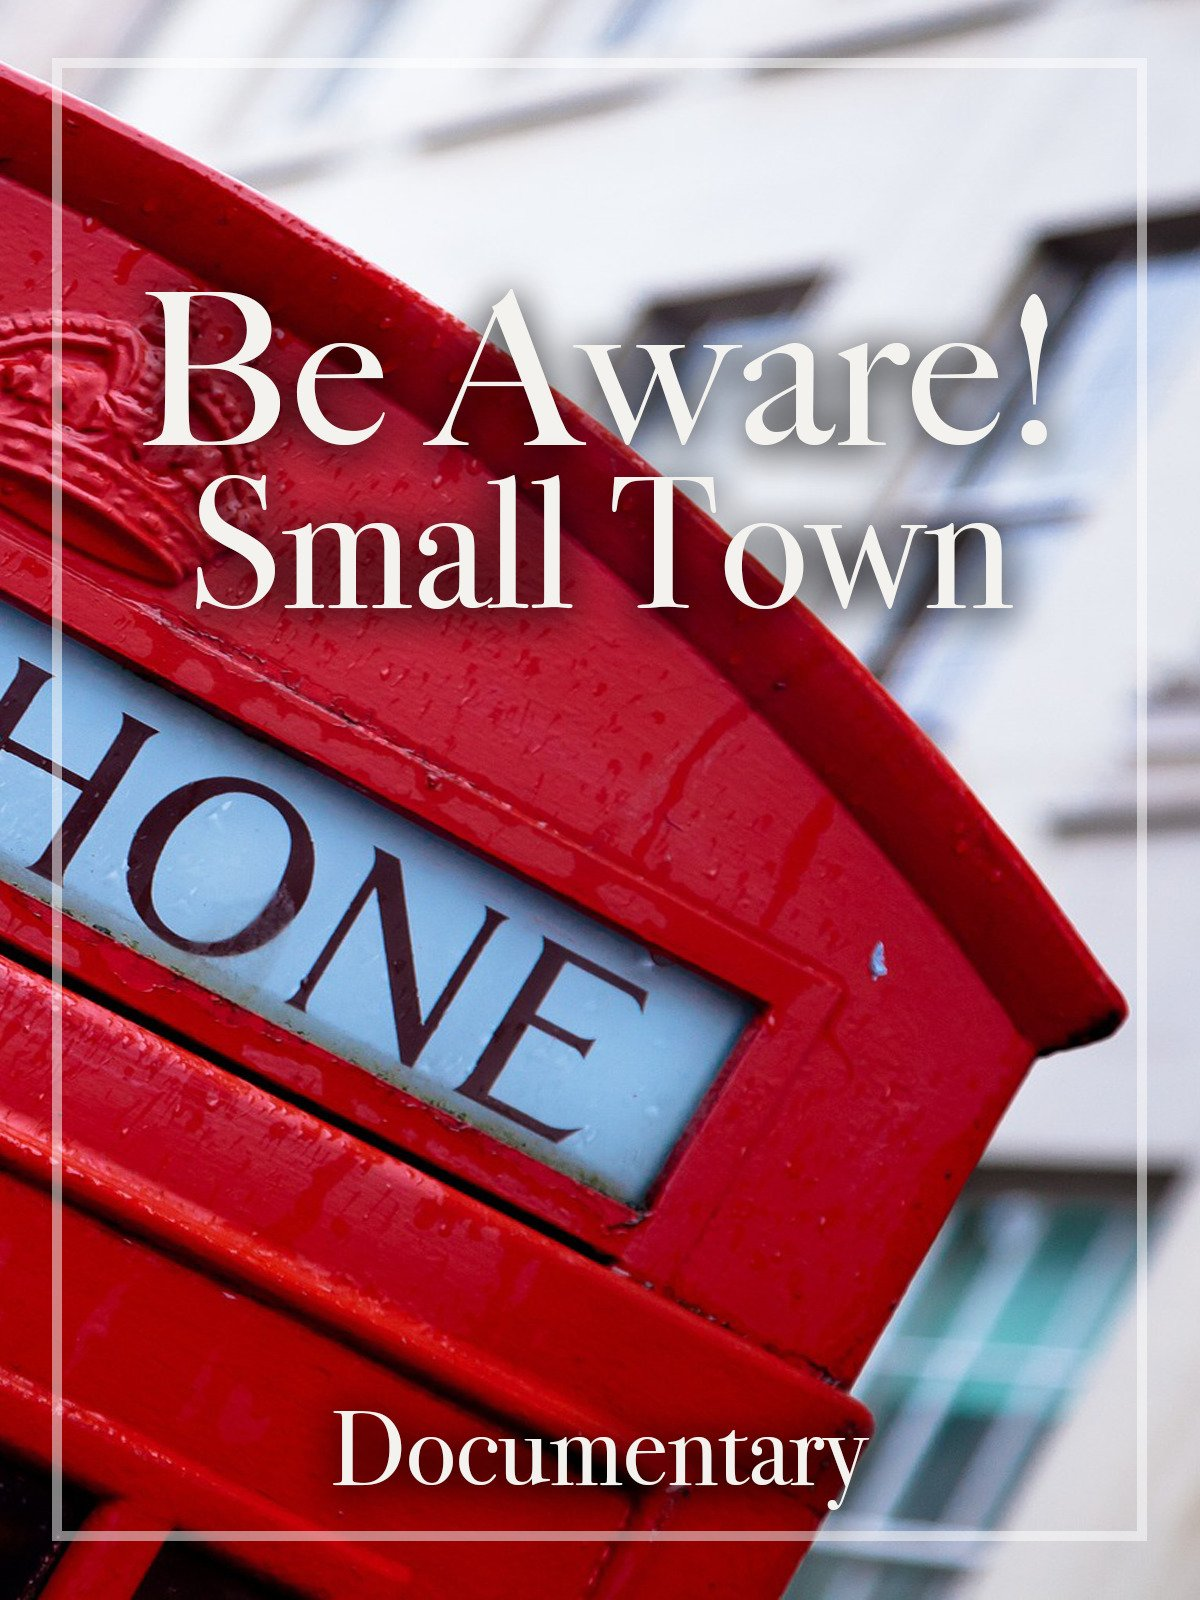 Be Aware! Small Town Documentary on Amazon Prime Video UK